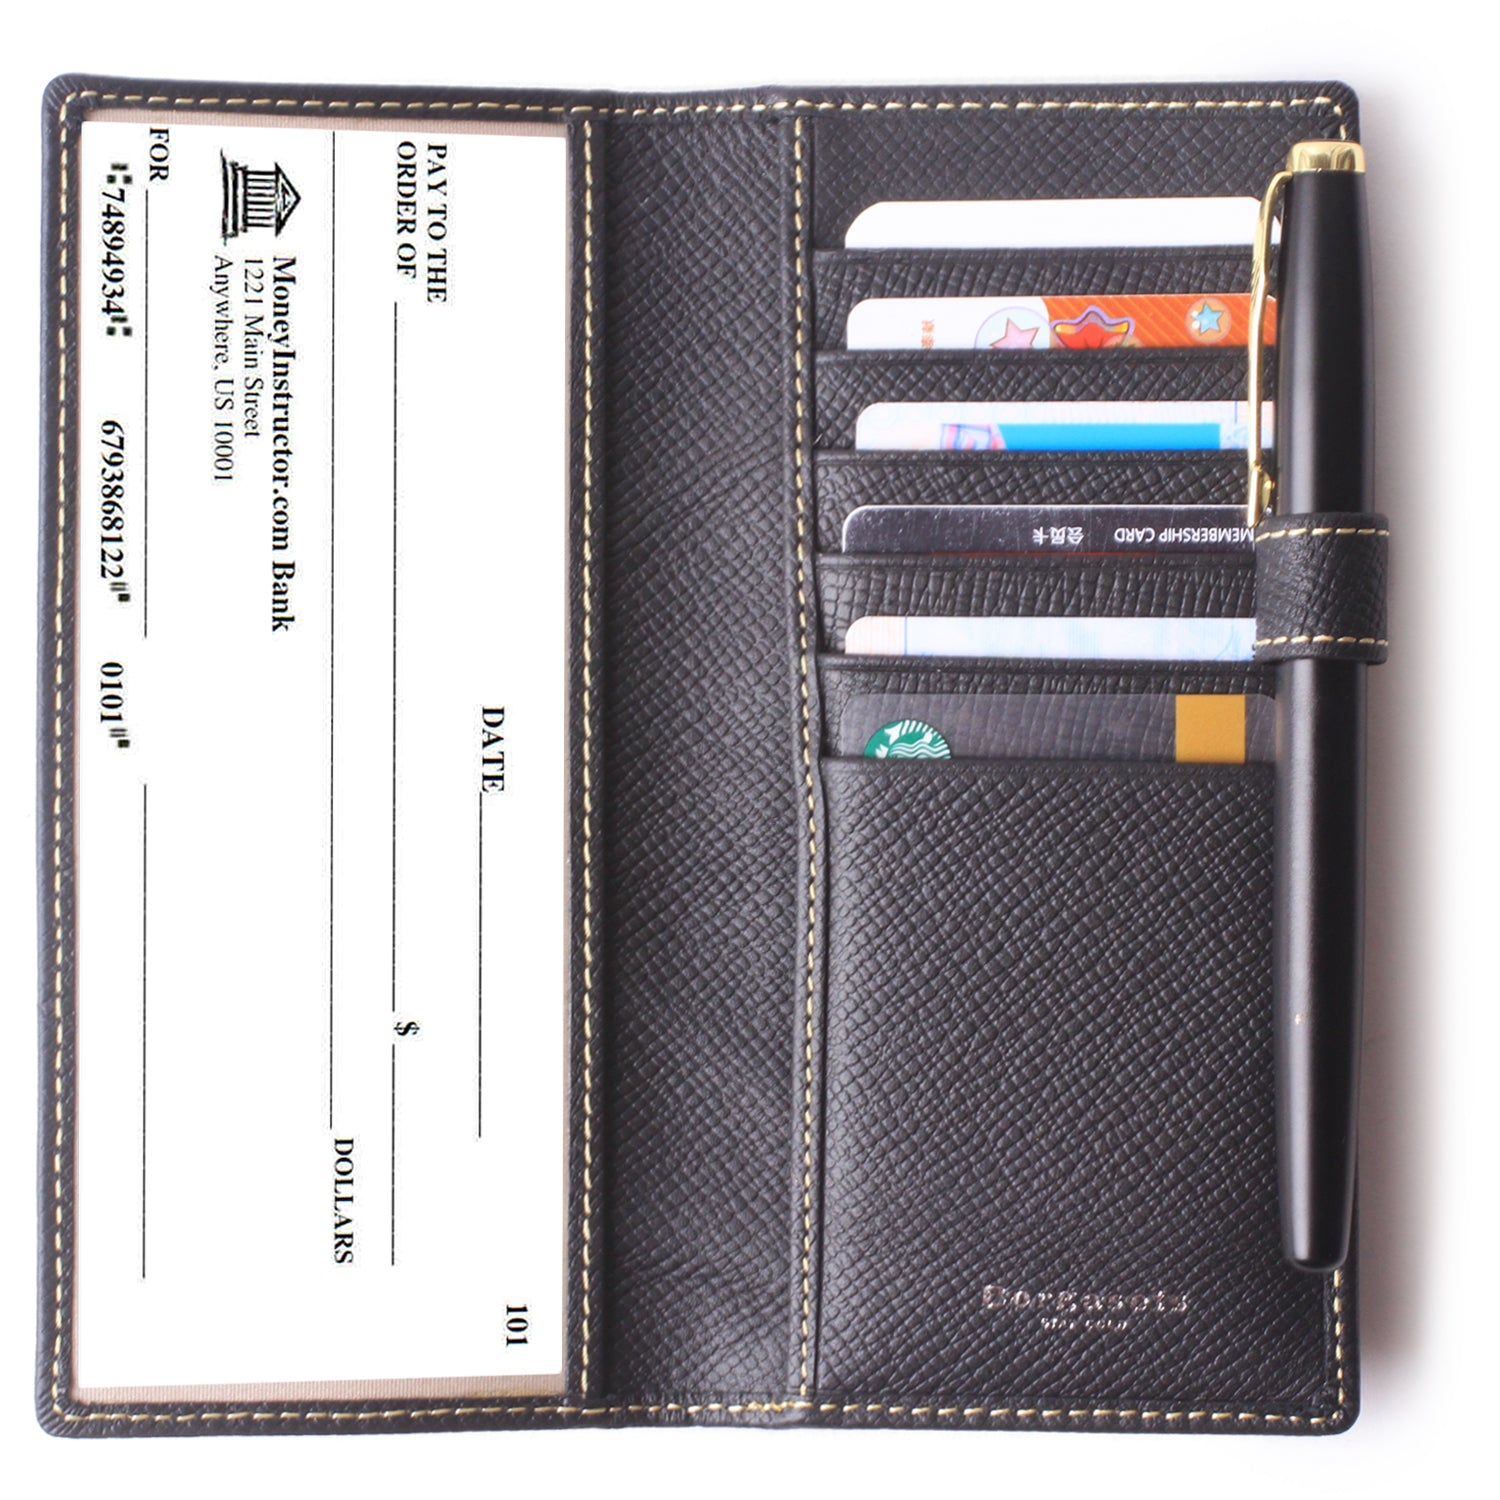 Leather Checkbook Cover For Men Women Checkbook Covers with Card Holder Wallet BG2255 Black - Borgasets